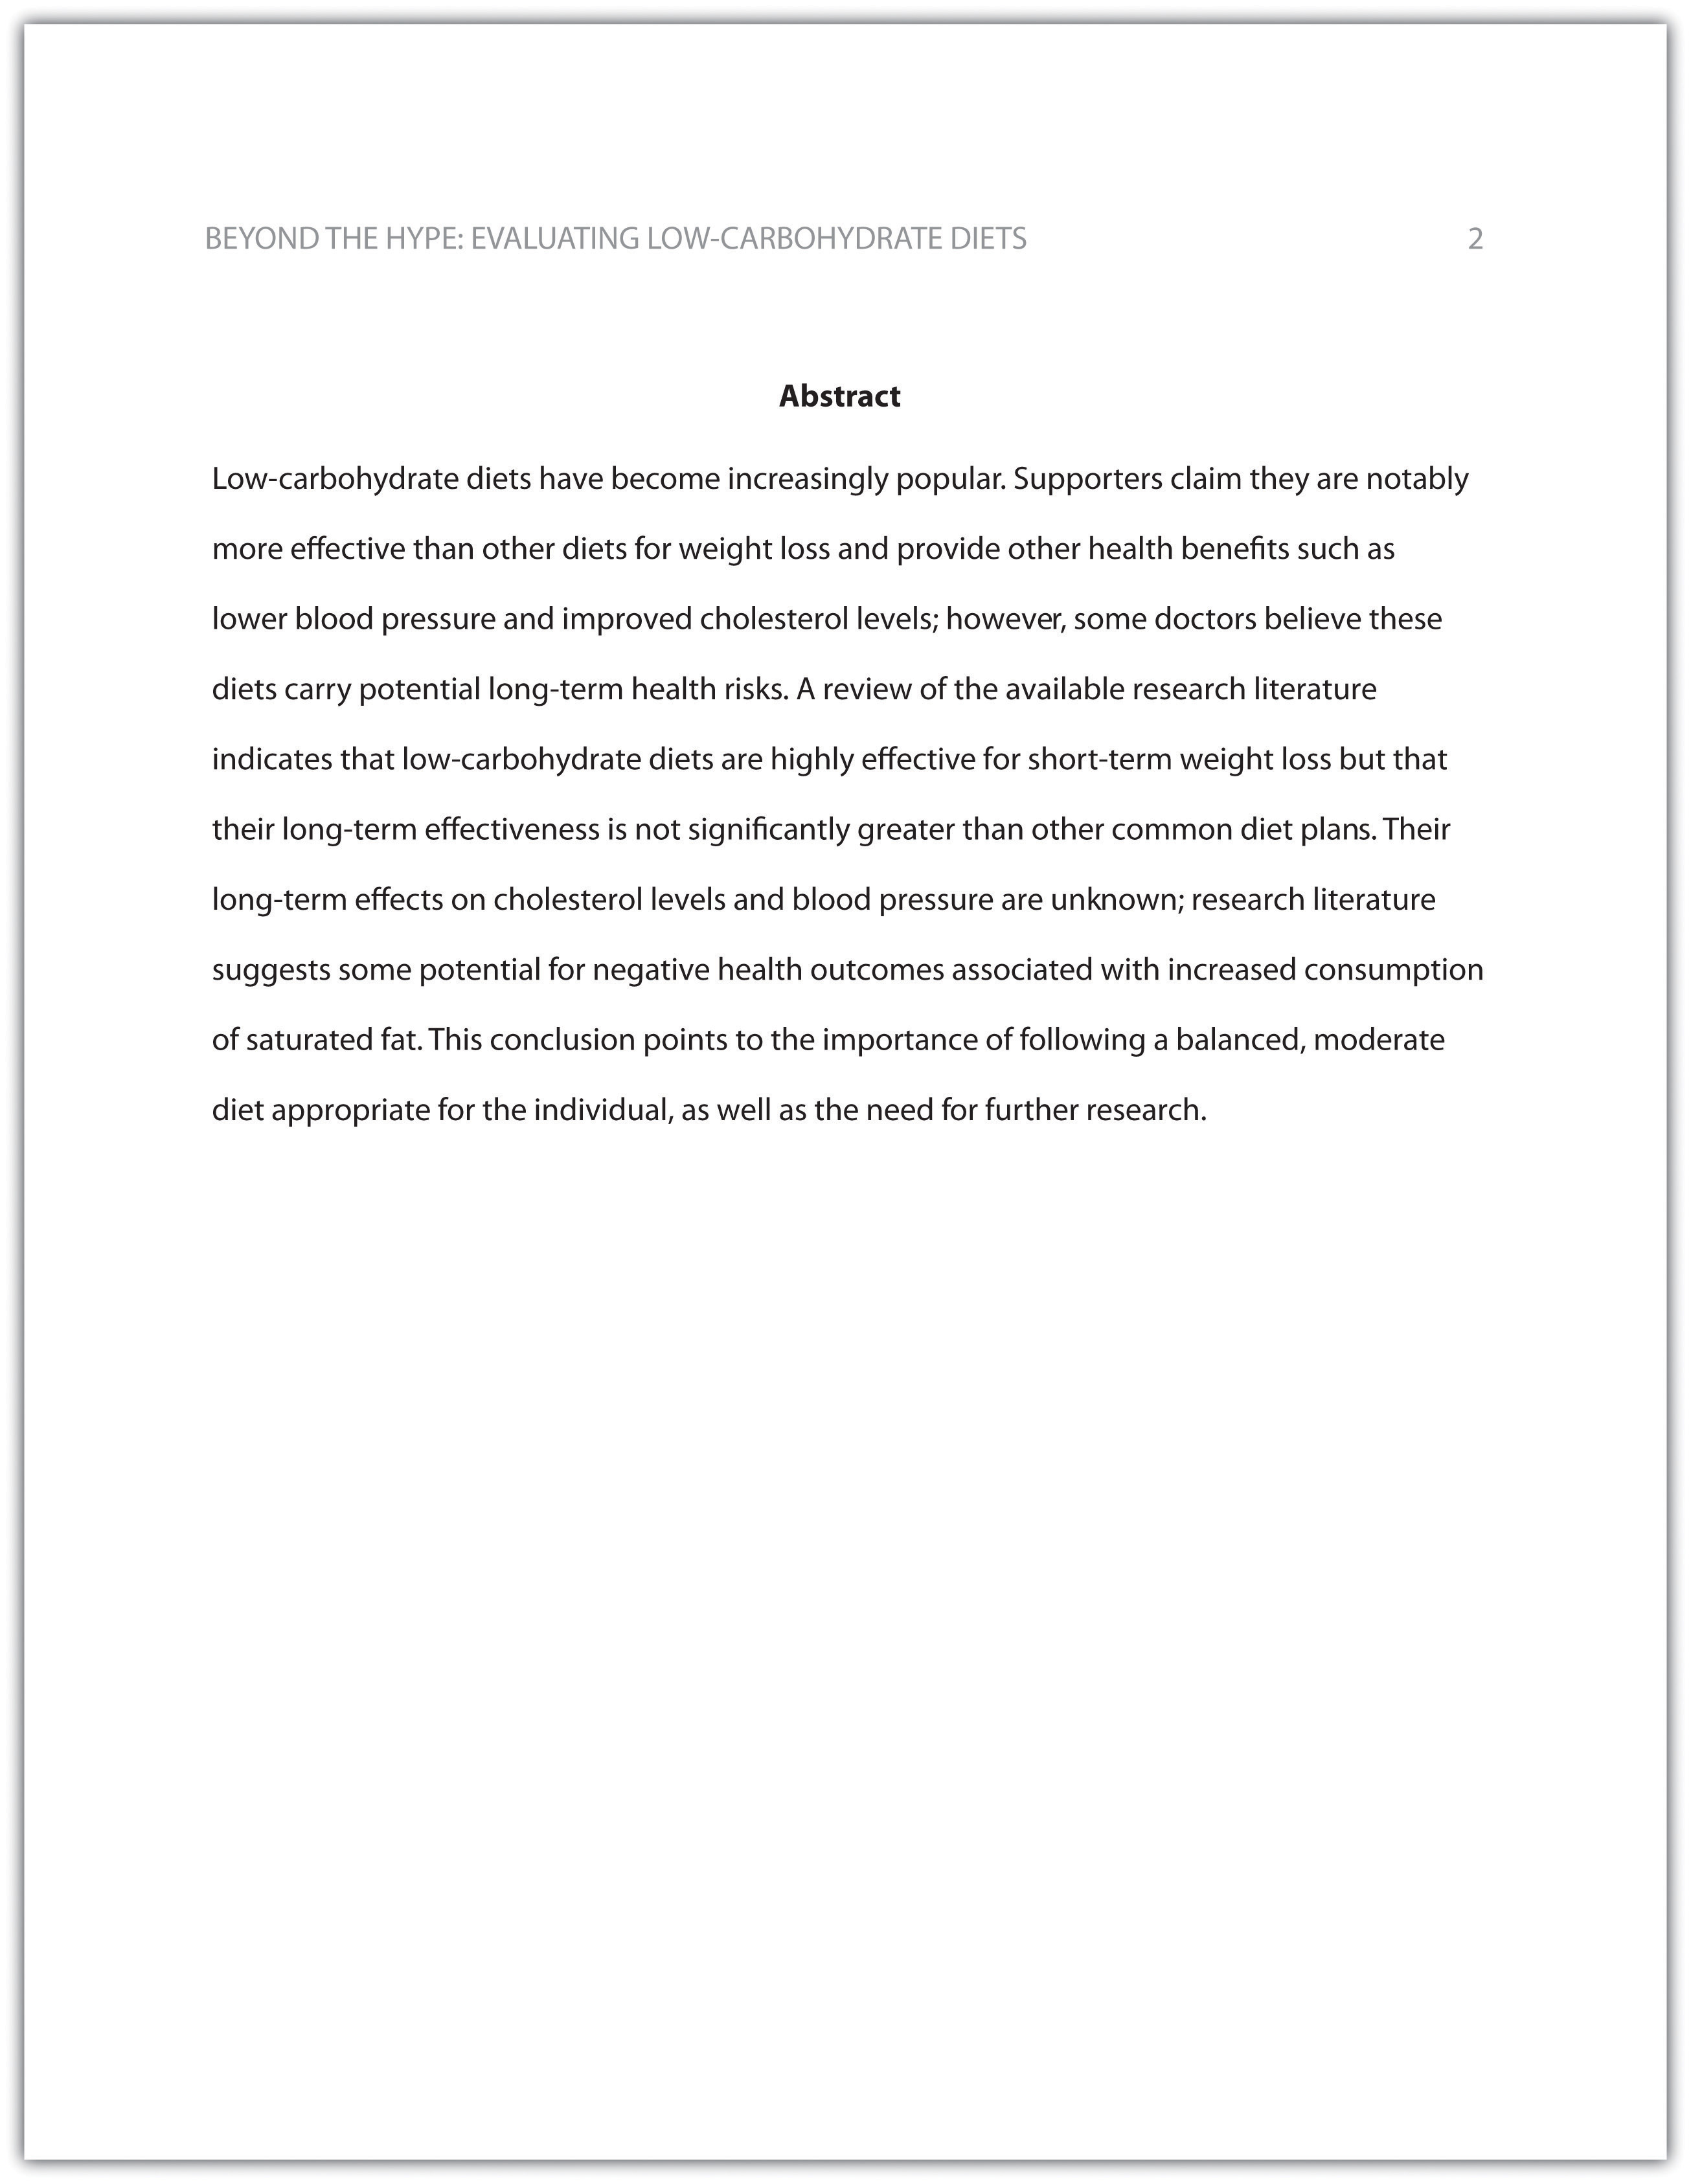 010 Research Paper Proper Order Of Sections In Apa Format Marvelous A Full